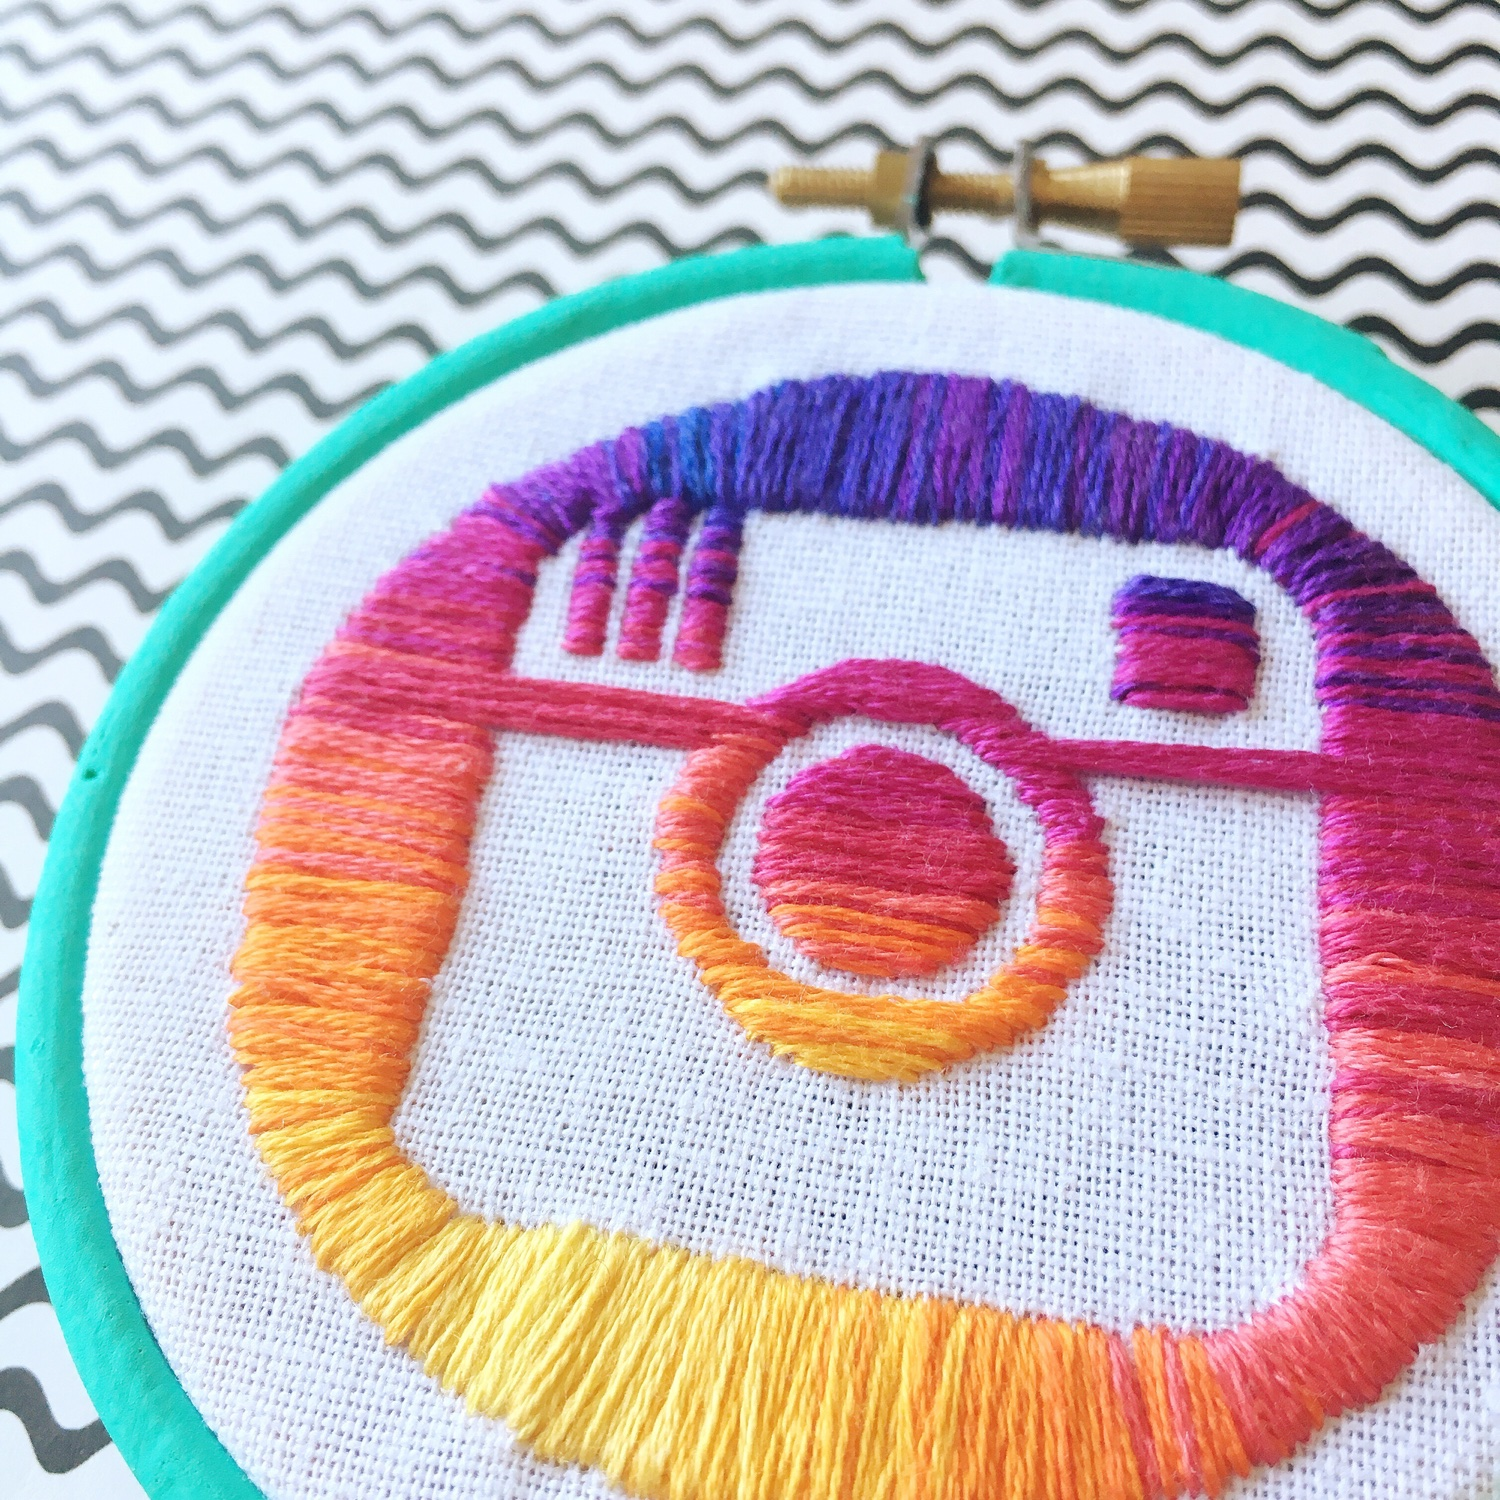 Hand embroidered Instagram logo | Hello! Hooray!